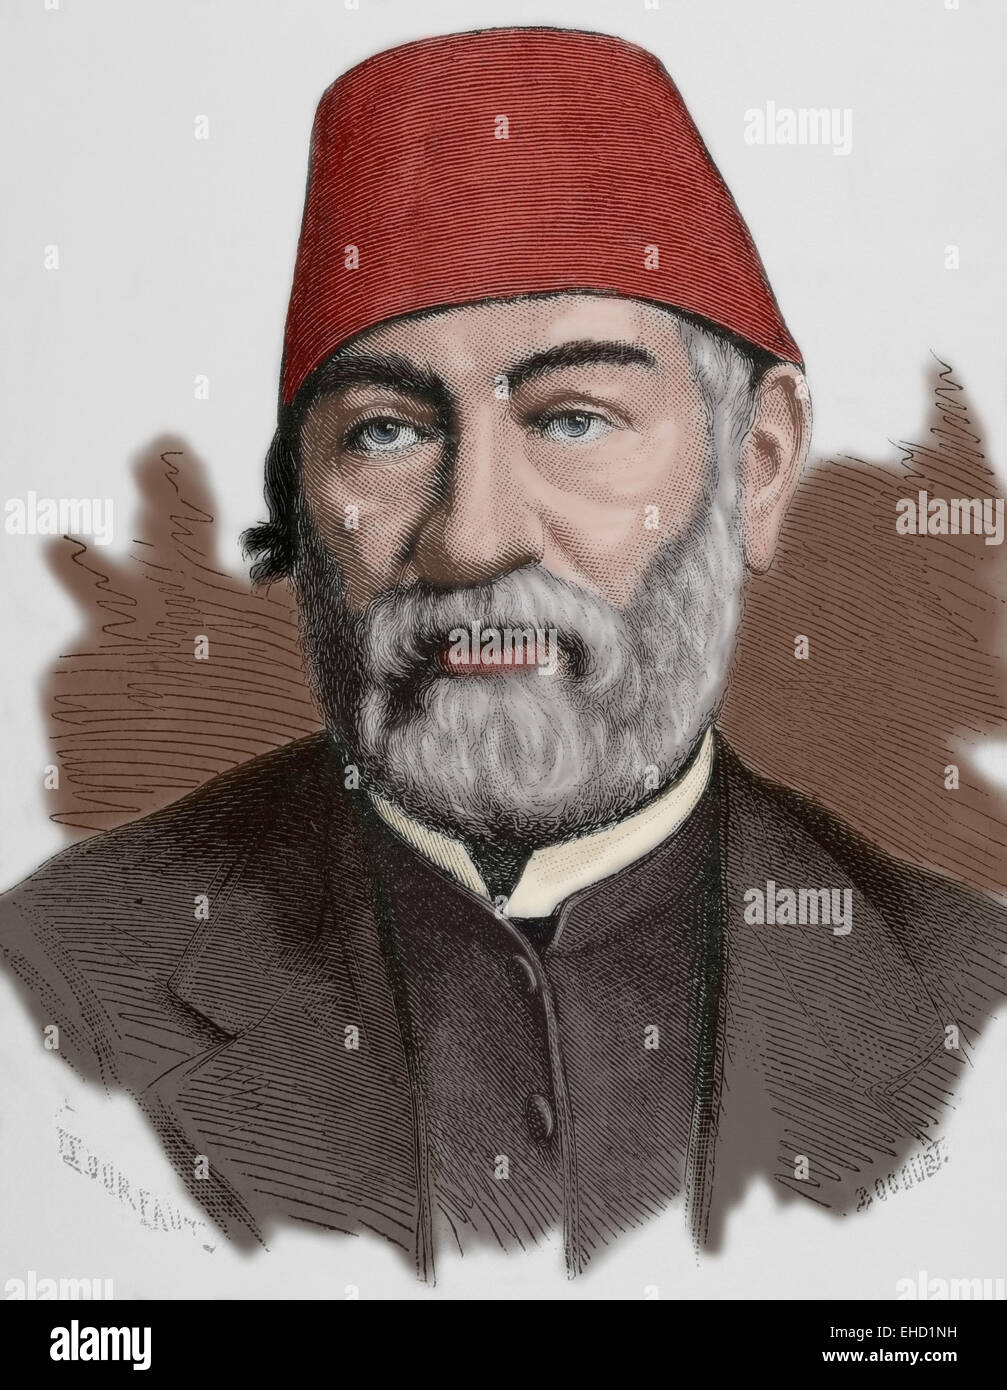 Auguste Mariette (1821-1881). French scholar, archaeologist and Egyptologist. Portrait. Engraving. Colored. - Stock Image